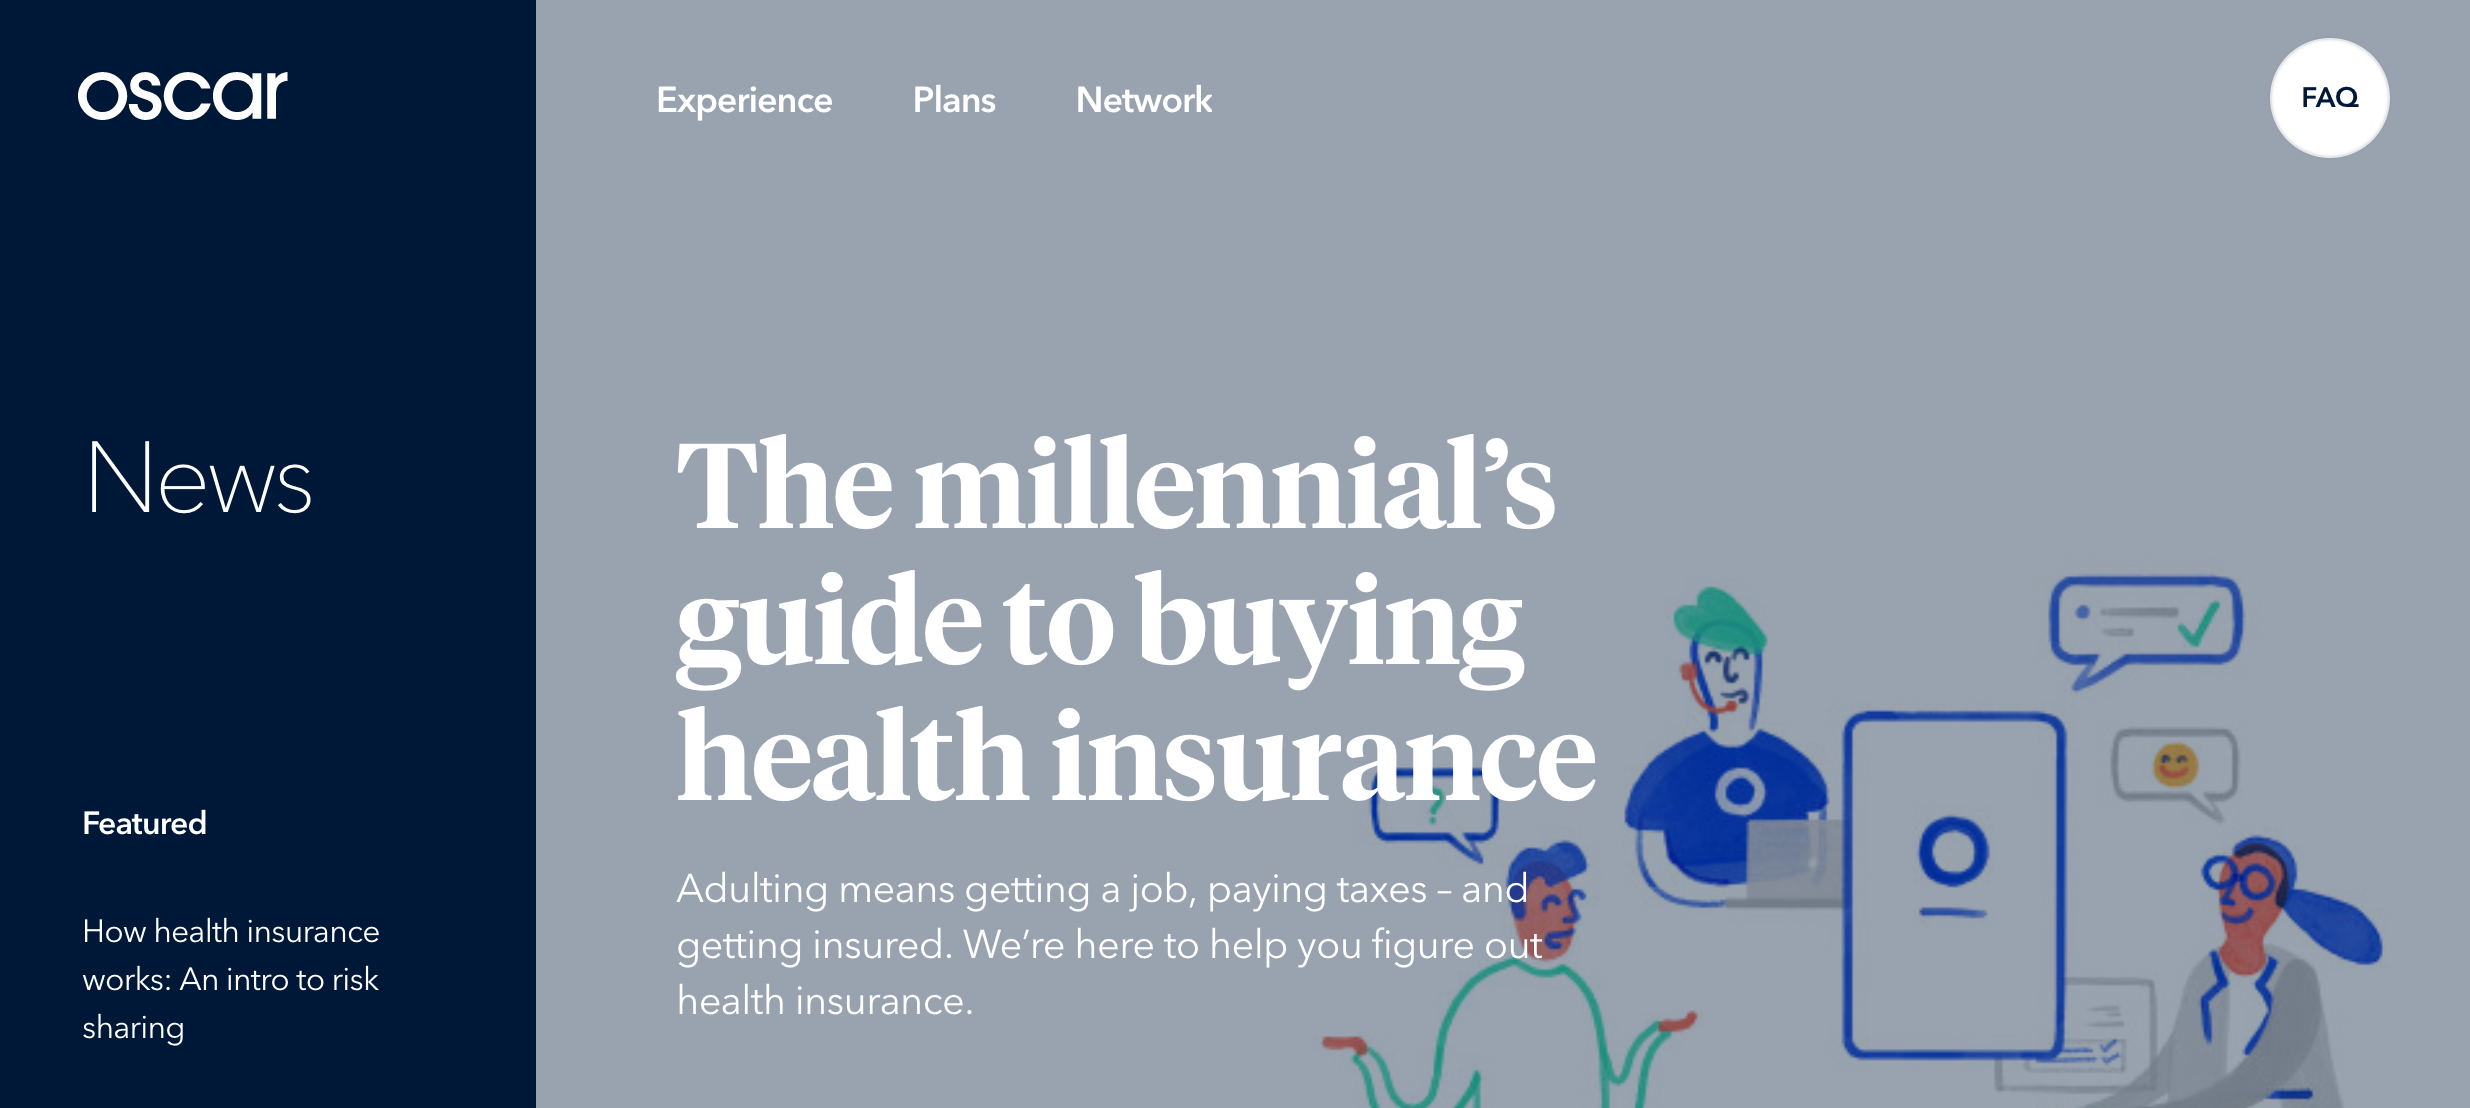 Oscar illustration of millennial's guide to buying insurance